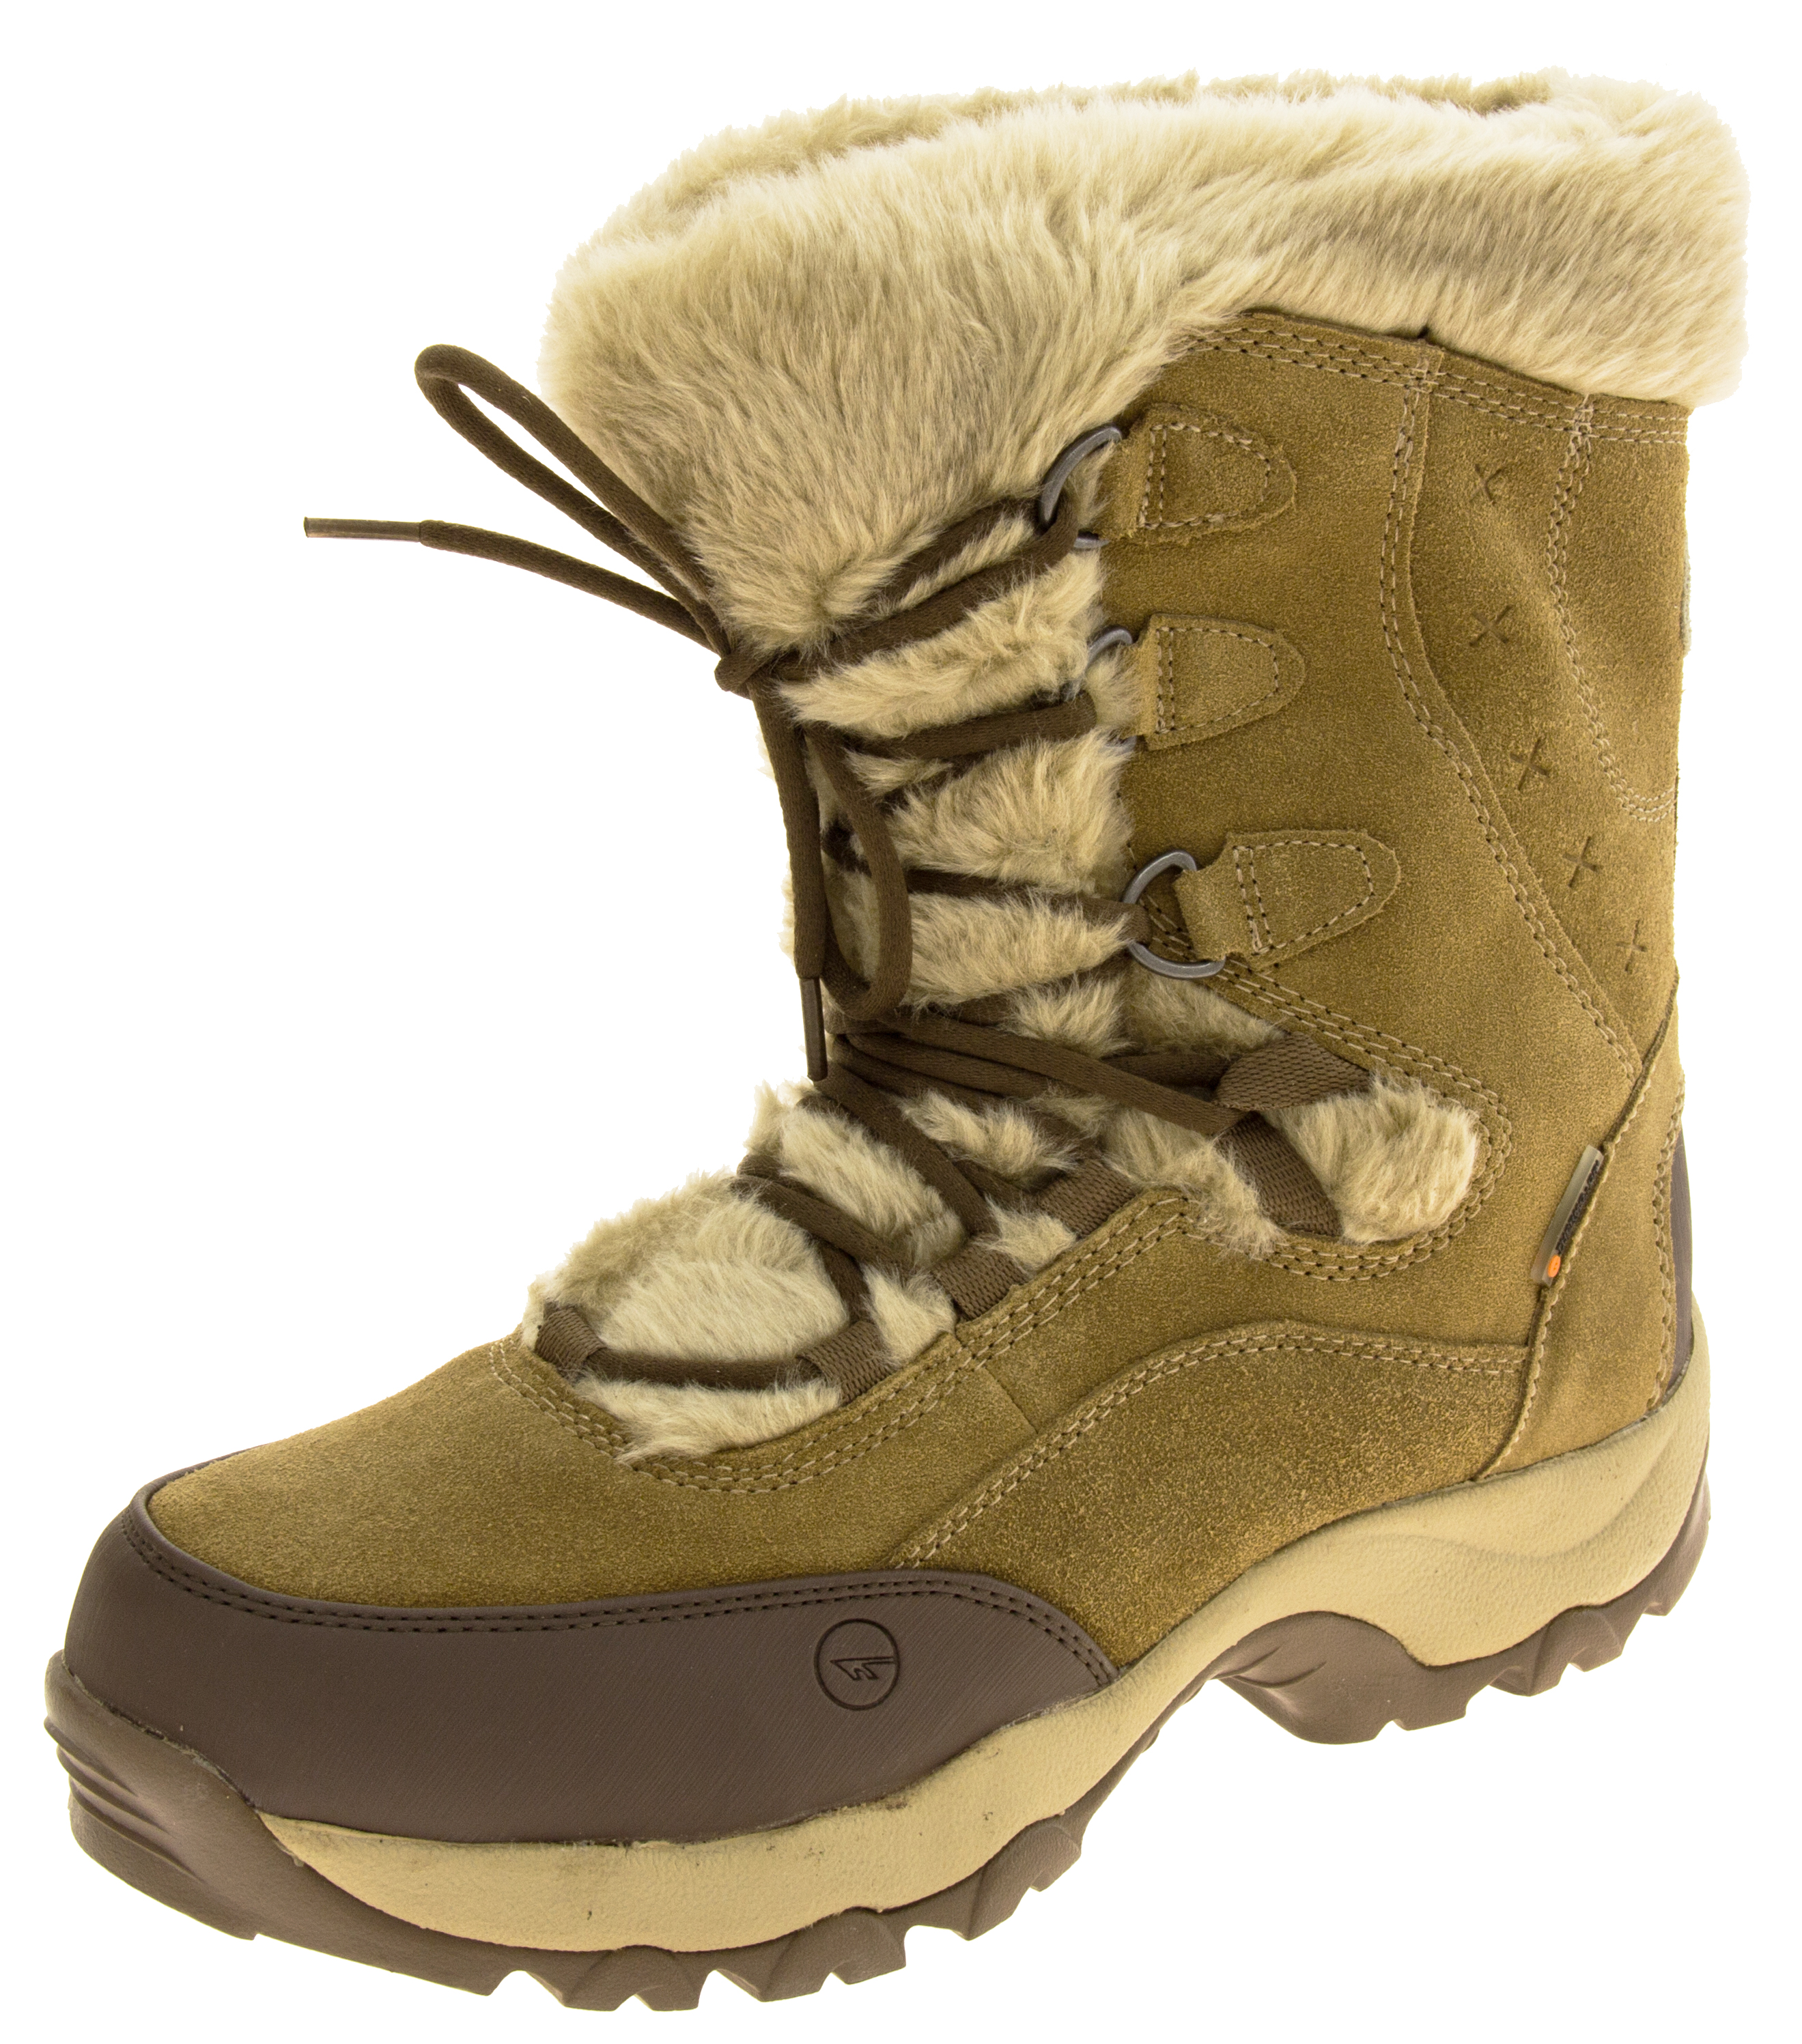 Shop for Winter Boots at REI - FREE SHIPPING With $50 minimum purchase. Top quality, great selection and expert advice you can trust. % Satisfaction Guarantee.